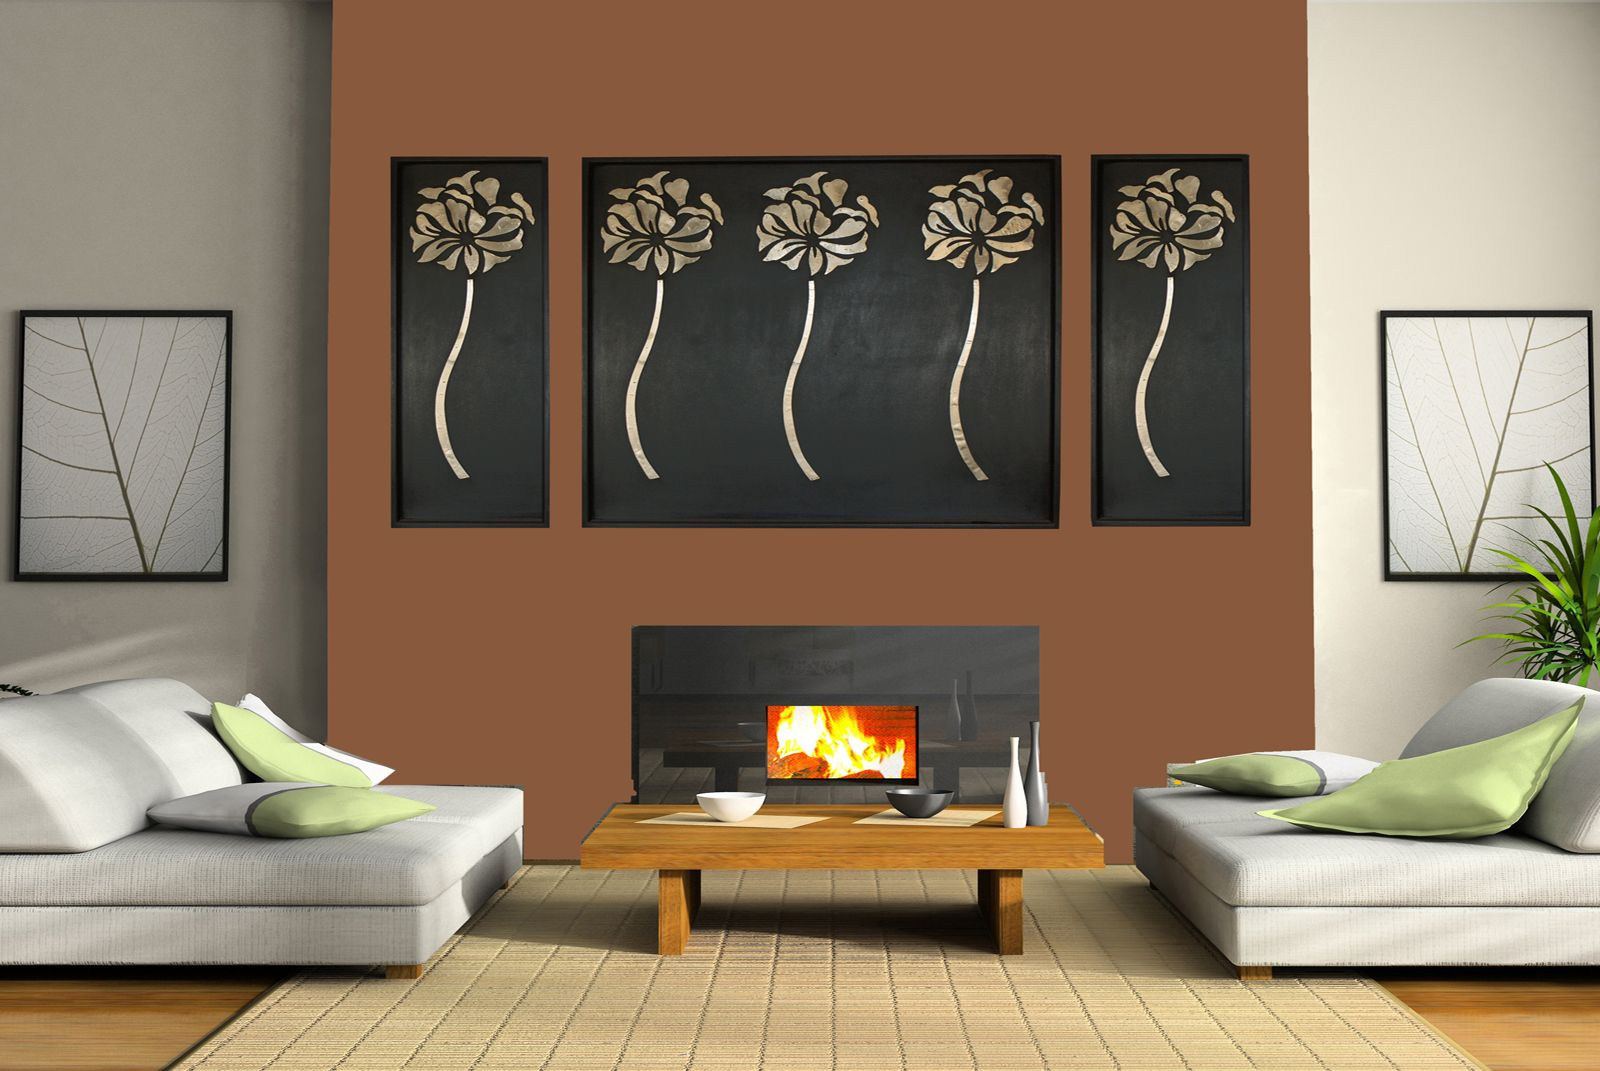 Spring living provide buy online furniture in india home décor